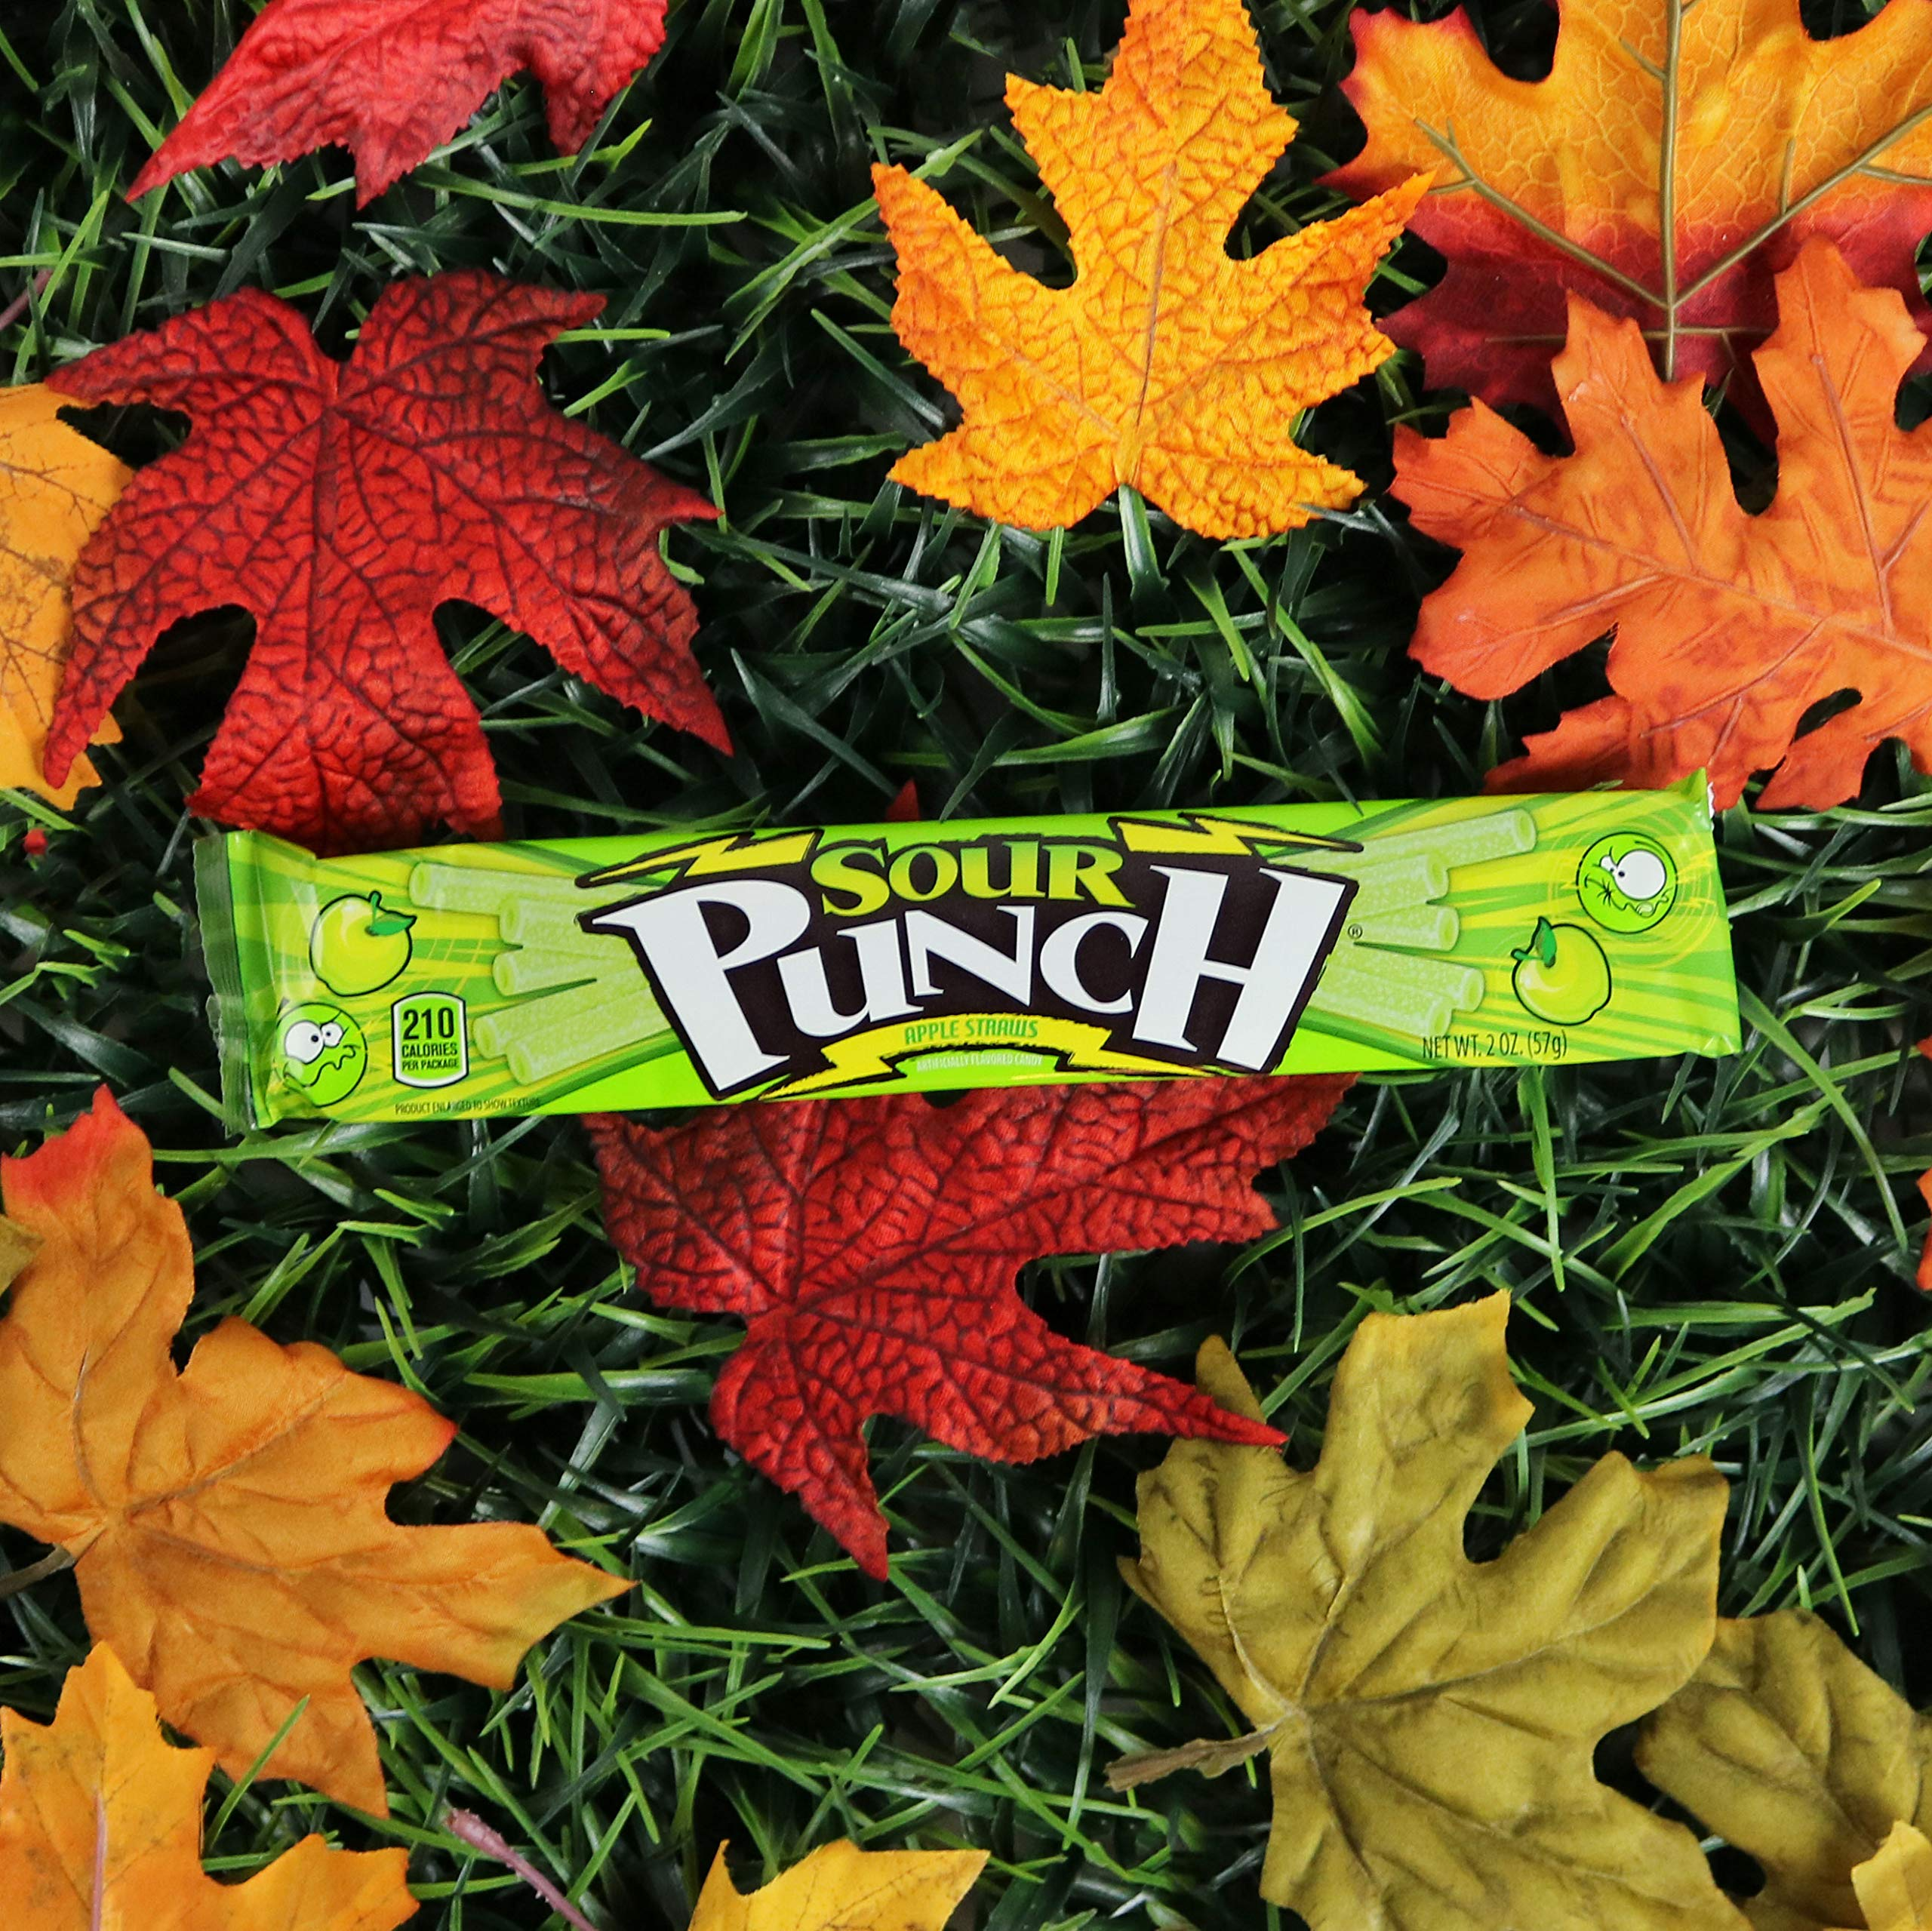 Sour Punch Straws, Sweet & Sour Apple Fruit Flavor, Soft Chewy Candy, 2oz Tray (24 Pack) by Sour Punch (Image #6)